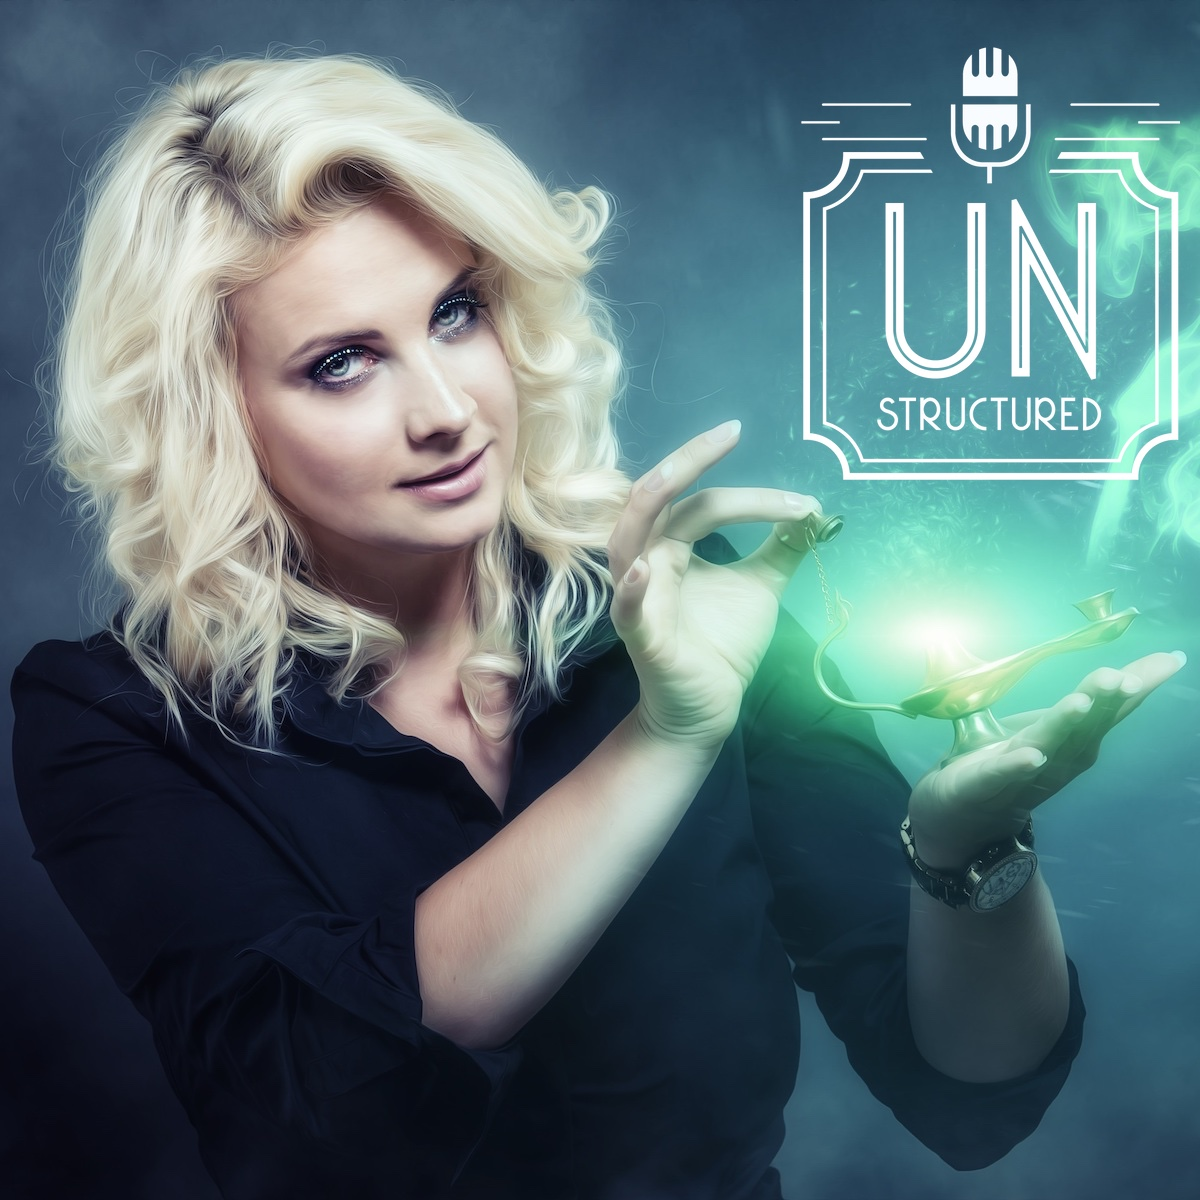 039 - Victoria Mavis UnstructuredPod Unstructured interviews - Dynamic Informal Conversations with unique wide-ranging and well-researched interviews hosted by Eric Hunley